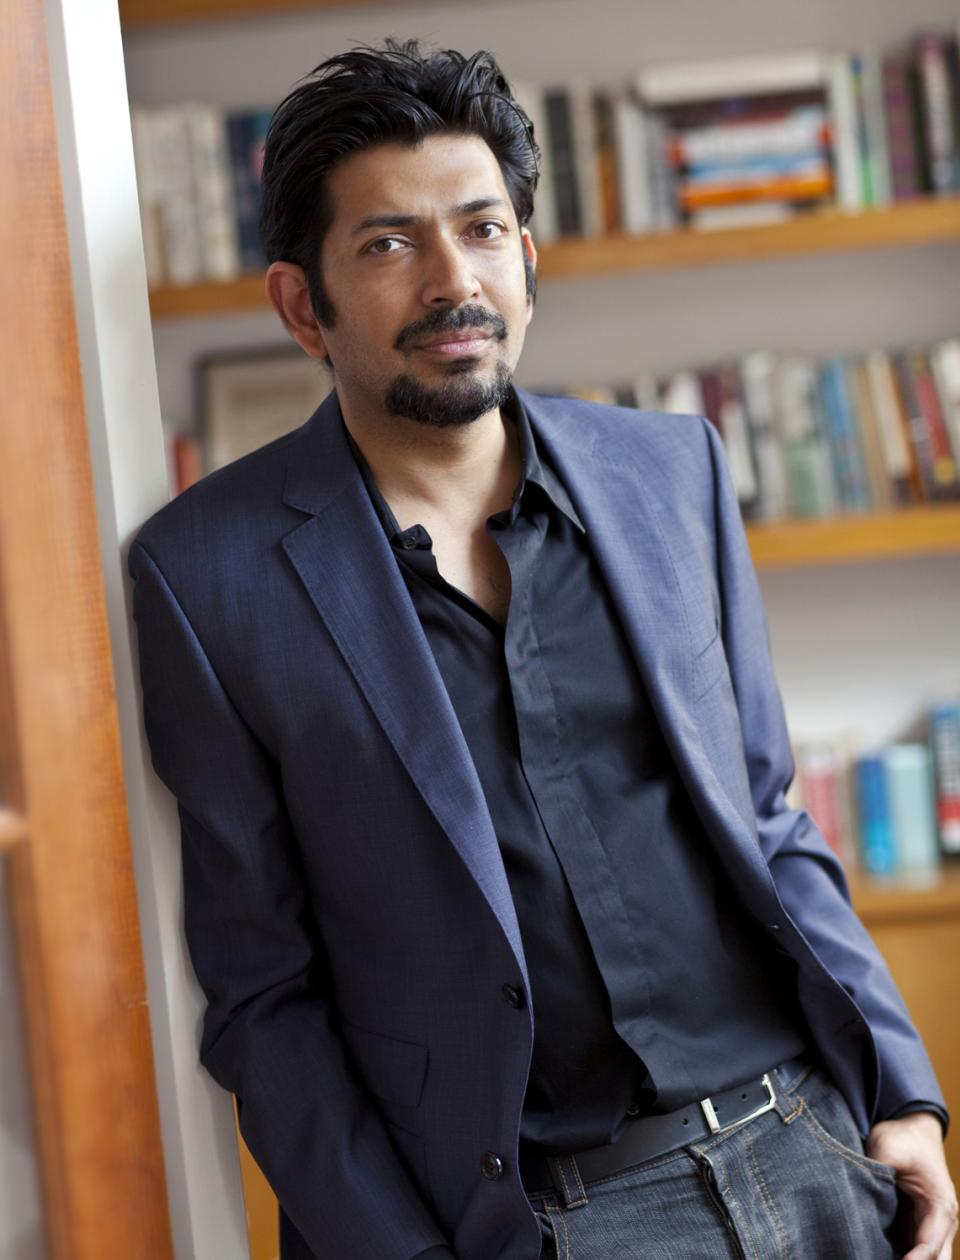 In this undated  publicity image provided by Simon & Schuster, Siddhartha Mukherjee, author of The Emperor of All Maladies: A Biography of Cancer, is shown. Mukherjee and documentary filmmaker Ken Burns are collaborating on a film based on the book. (AP Photo/Simon & Schuster, Deborah Feingold)